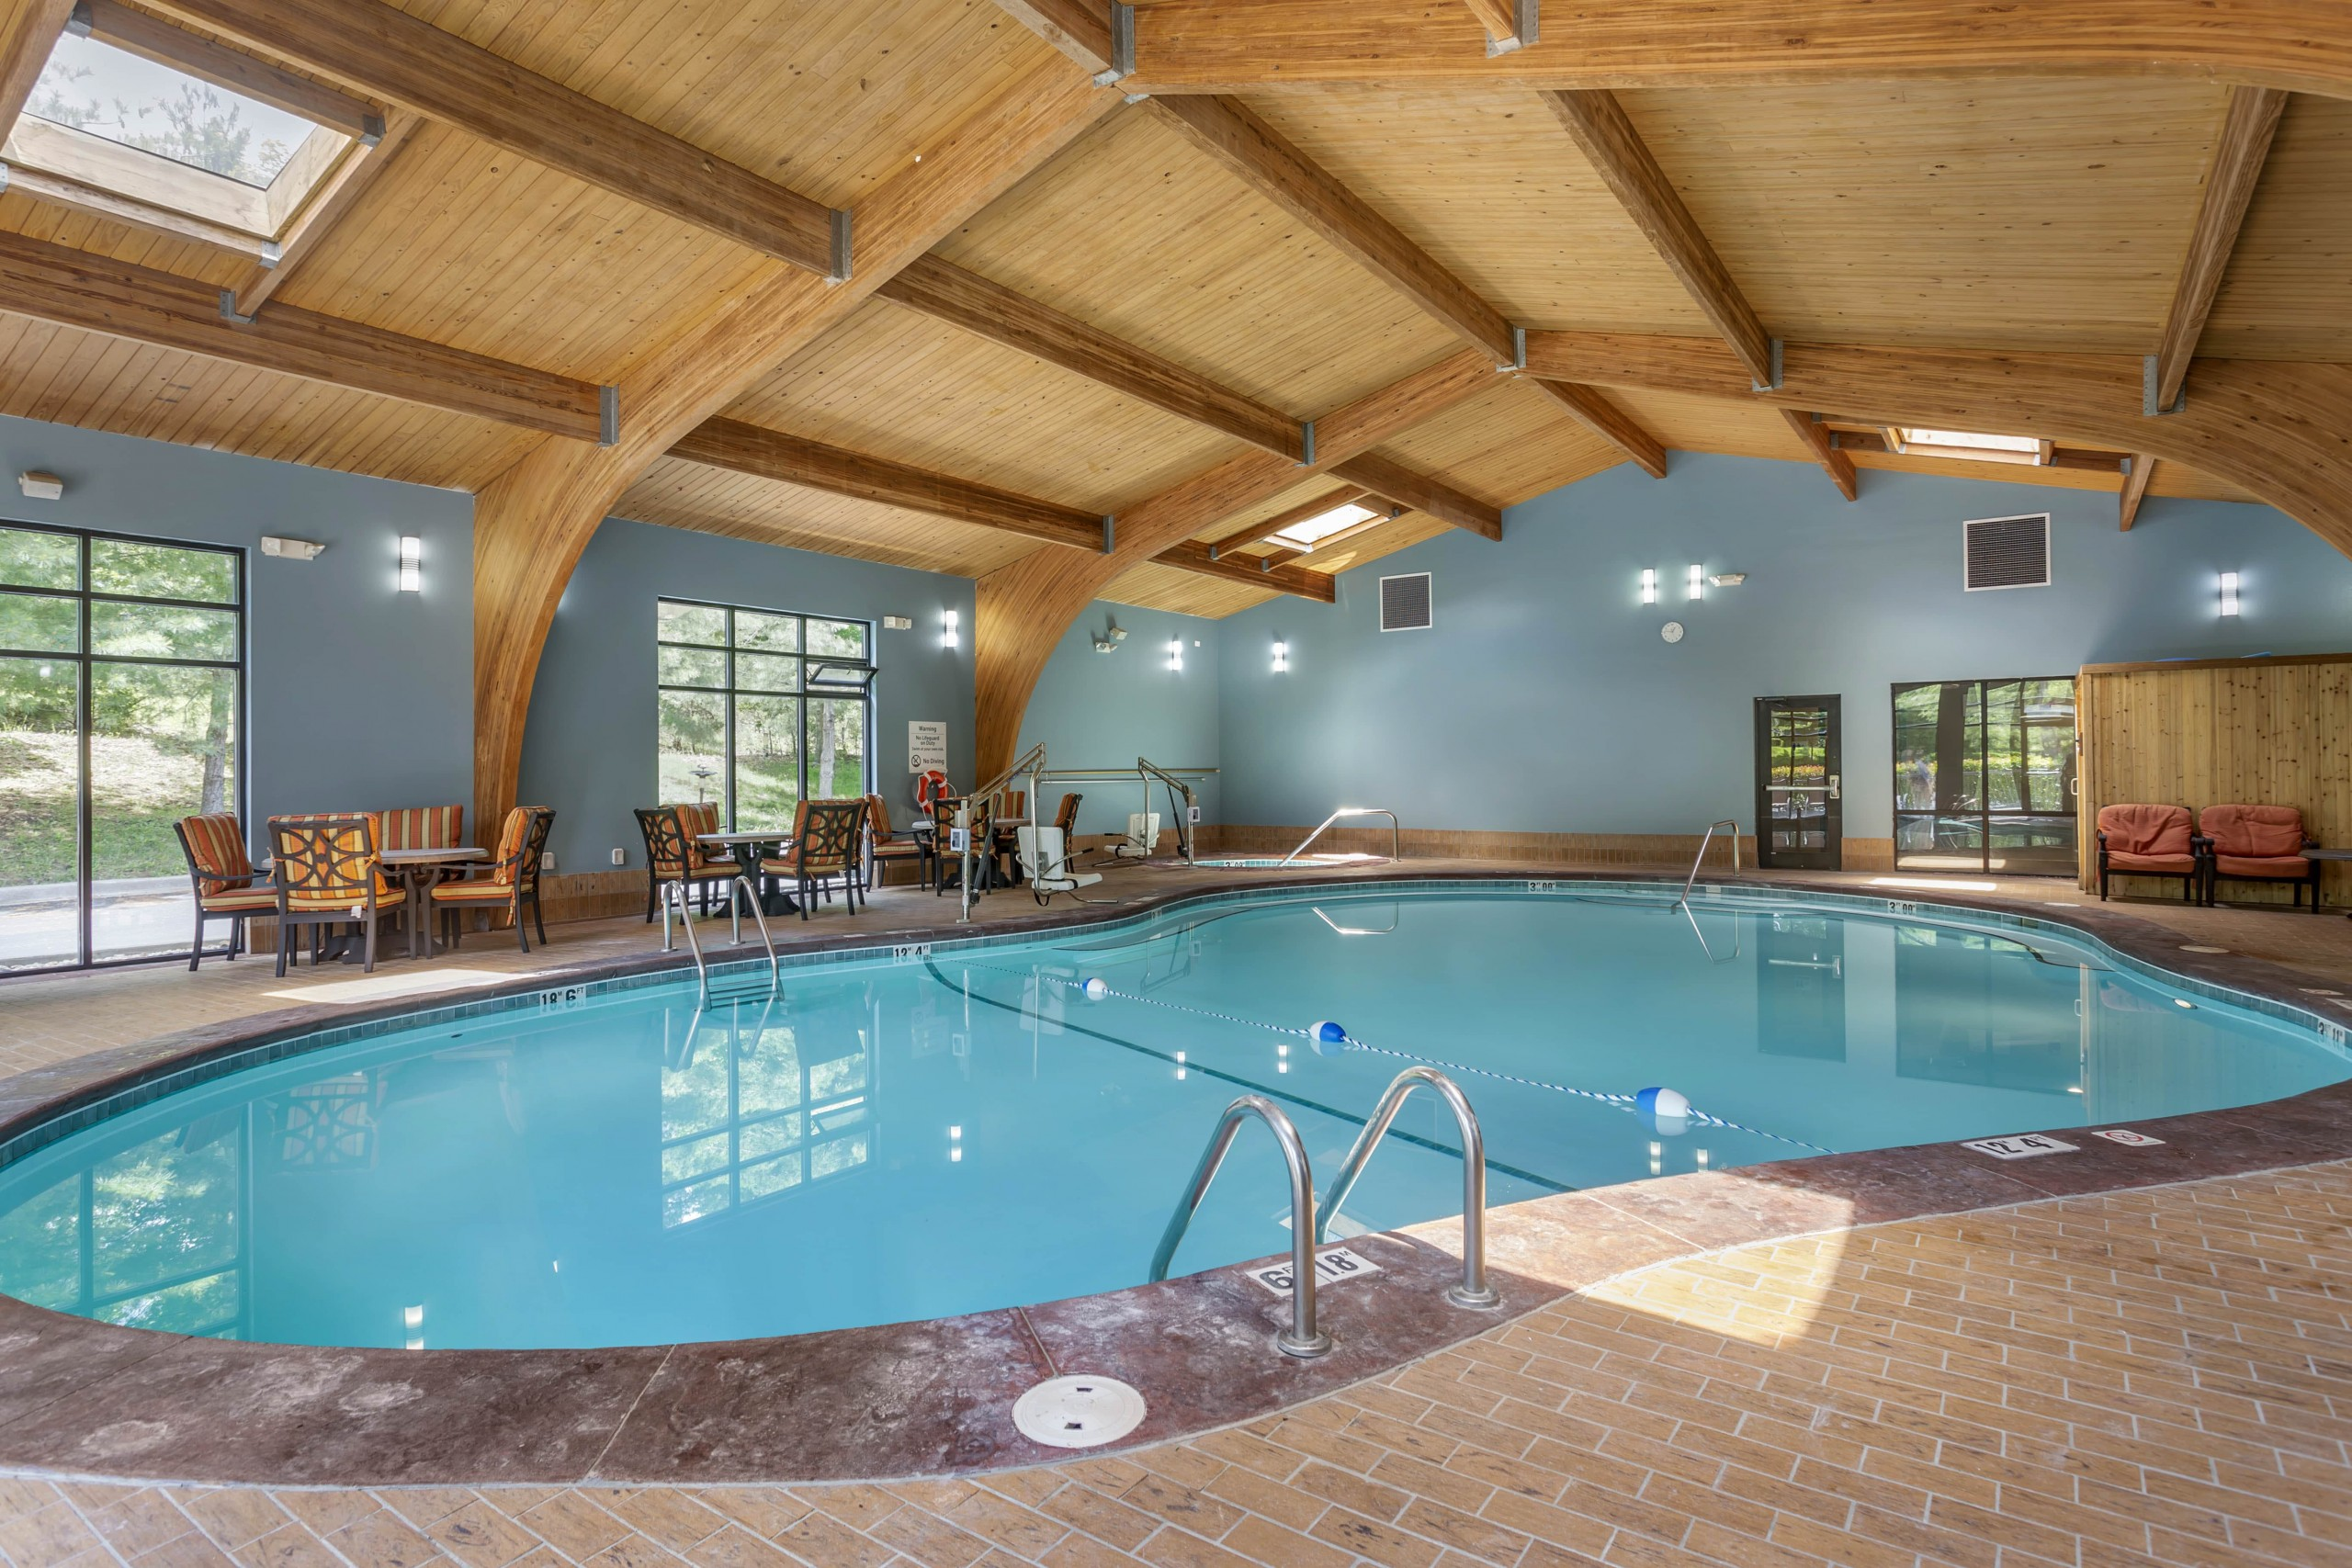 Holiday Inn Express Green Moutain Dr Saltwater Pool